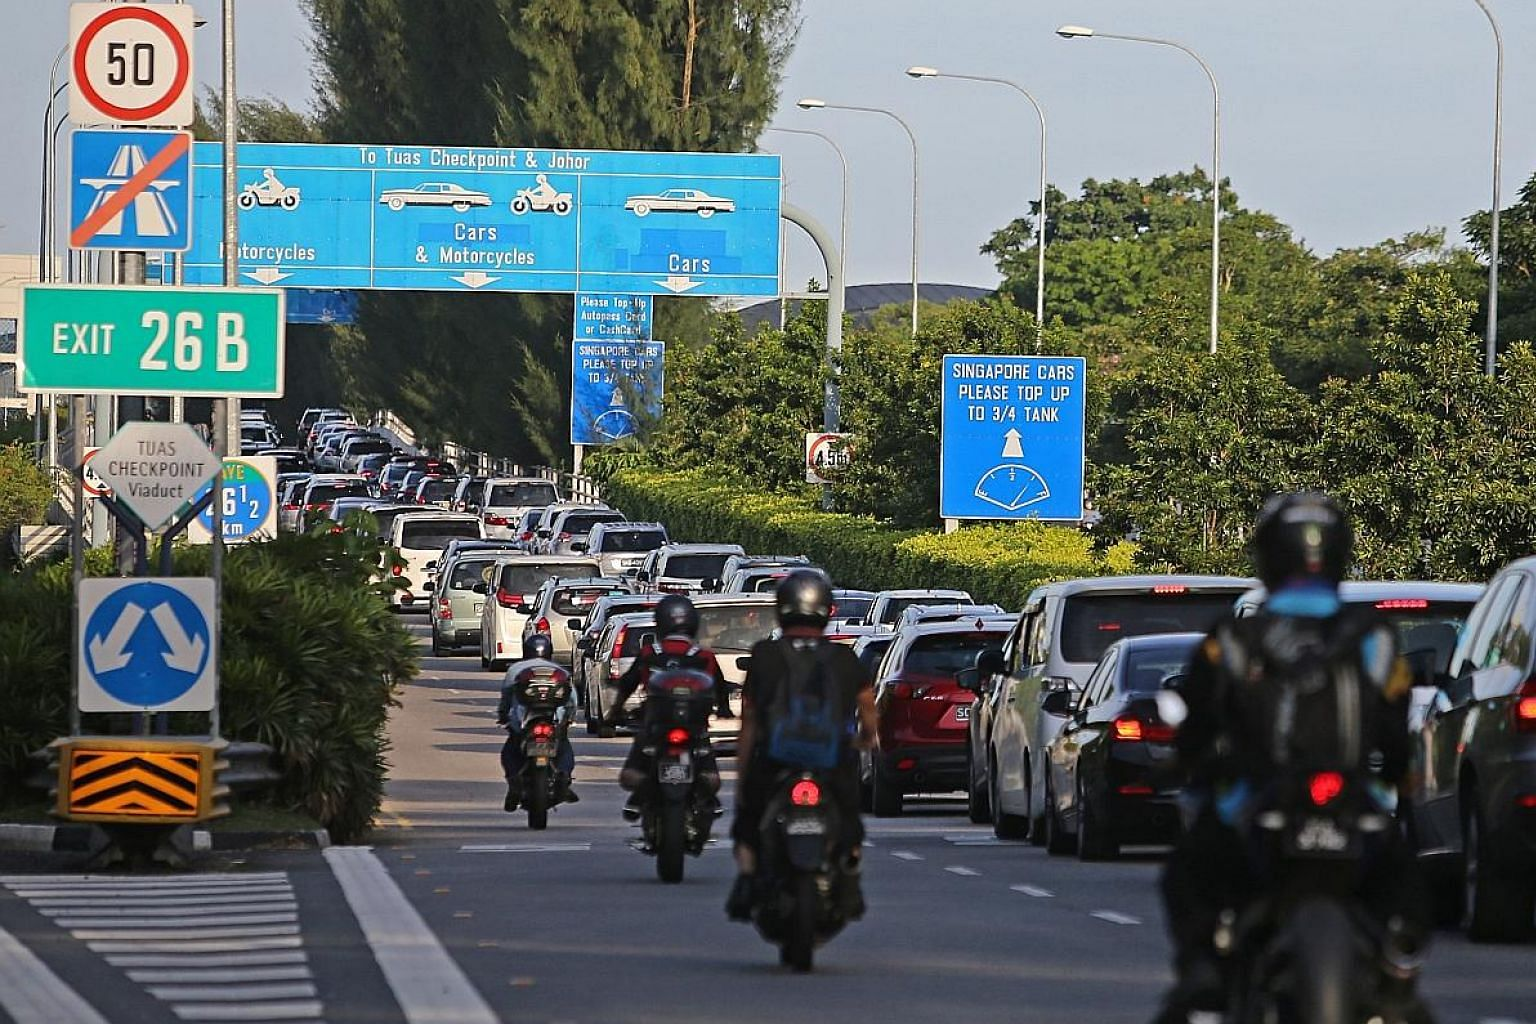 Motorcyclists currently pay RM1.10 (35 Singapore cents) on the Malaysian side of the Second Link and 40 cents at Tuas checkpoint. The Malaysian government has said that motorcyclists will get free passage across the Second Link to Singapore from Jan